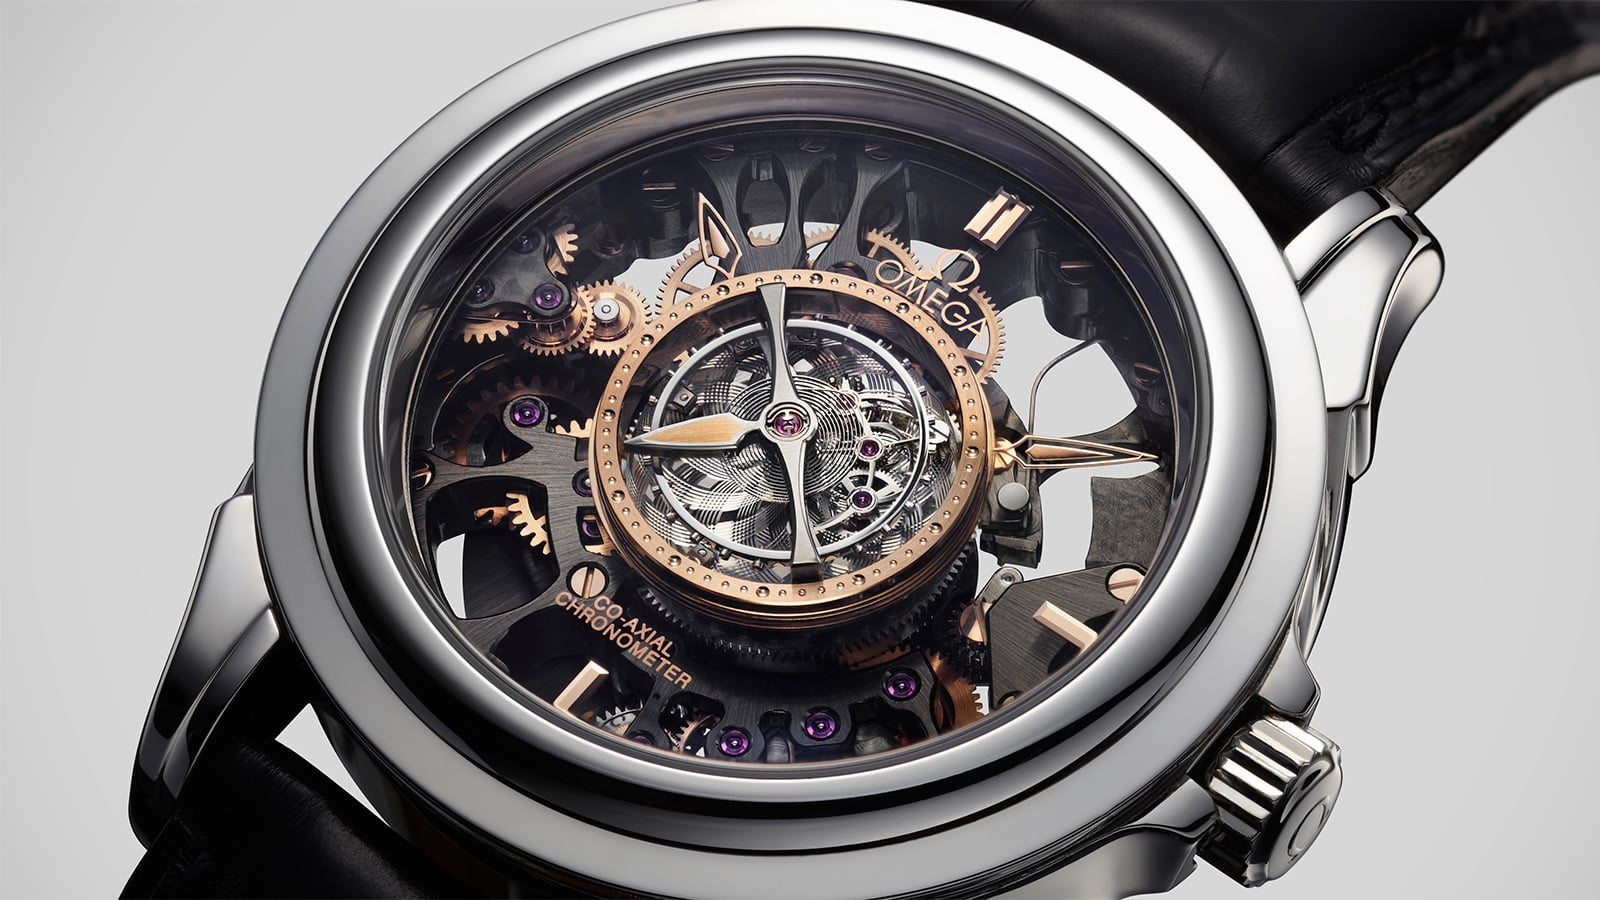 De Ville Tourbillon Die Kollektion - Folie 1 - 27538